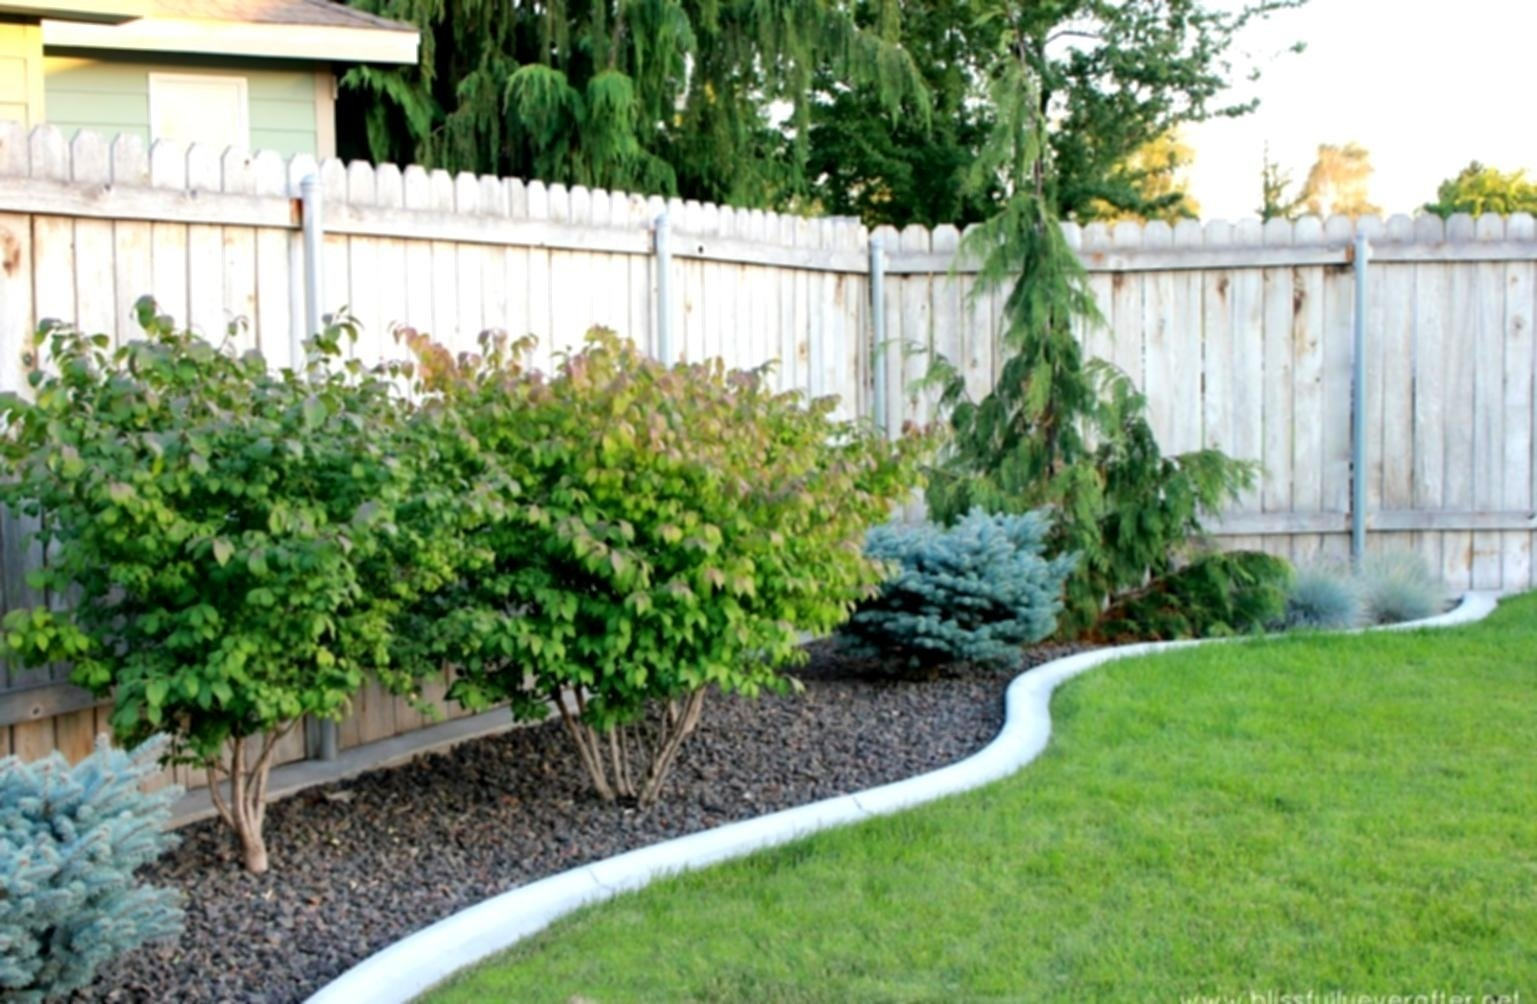 10 Trendy Cheap Landscaping Ideas For Backyard backyard landscaping plans back yard ideas on a budget for front for 1 2020